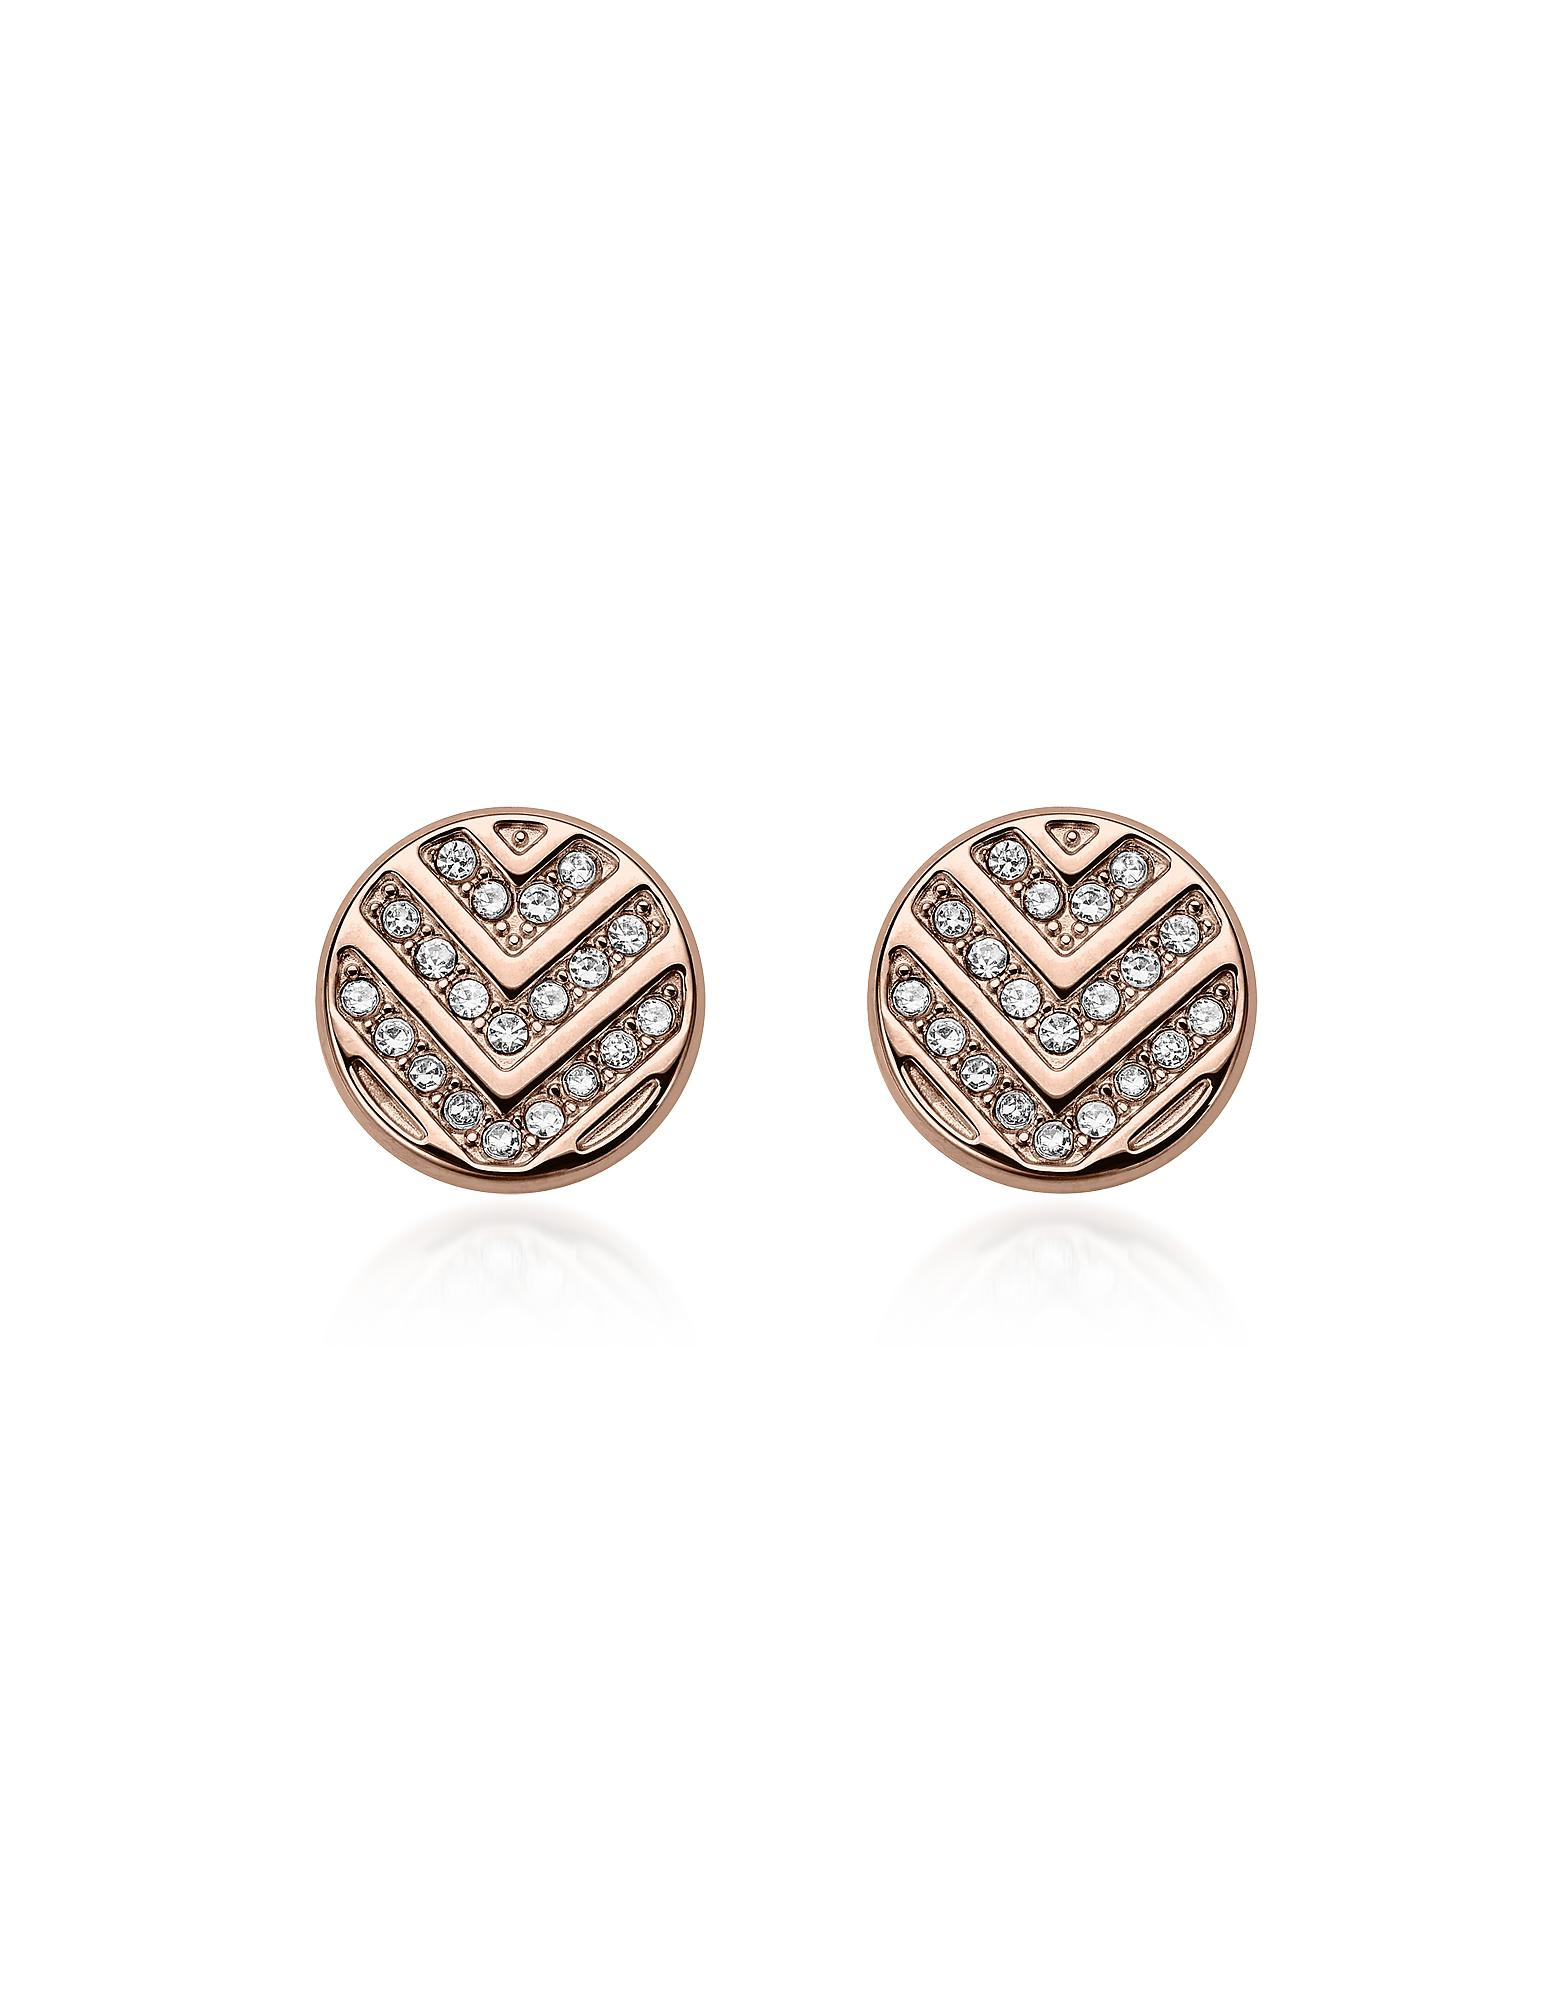 Fossil Women Stainless Steel Stud Earrings - JF02906791